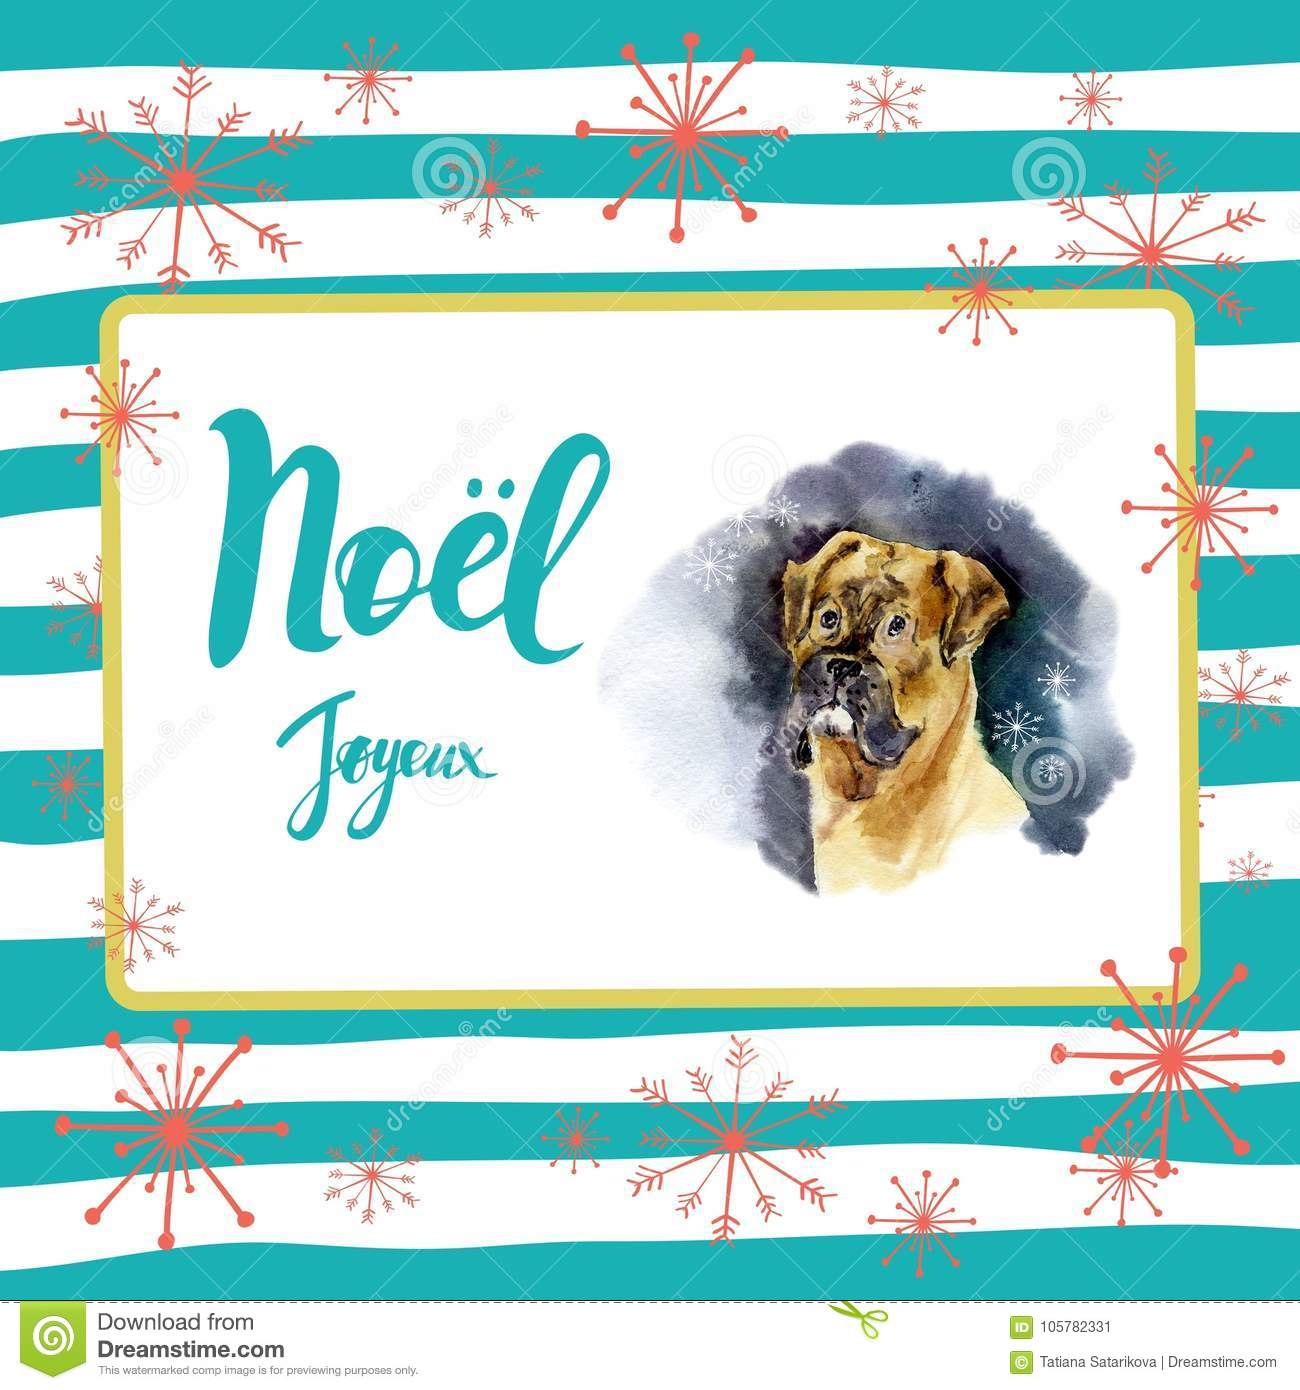 Merry christmas card design with greetings in french language download merry christmas card design with greetings in french language joyeux noel phrase on striped m4hsunfo